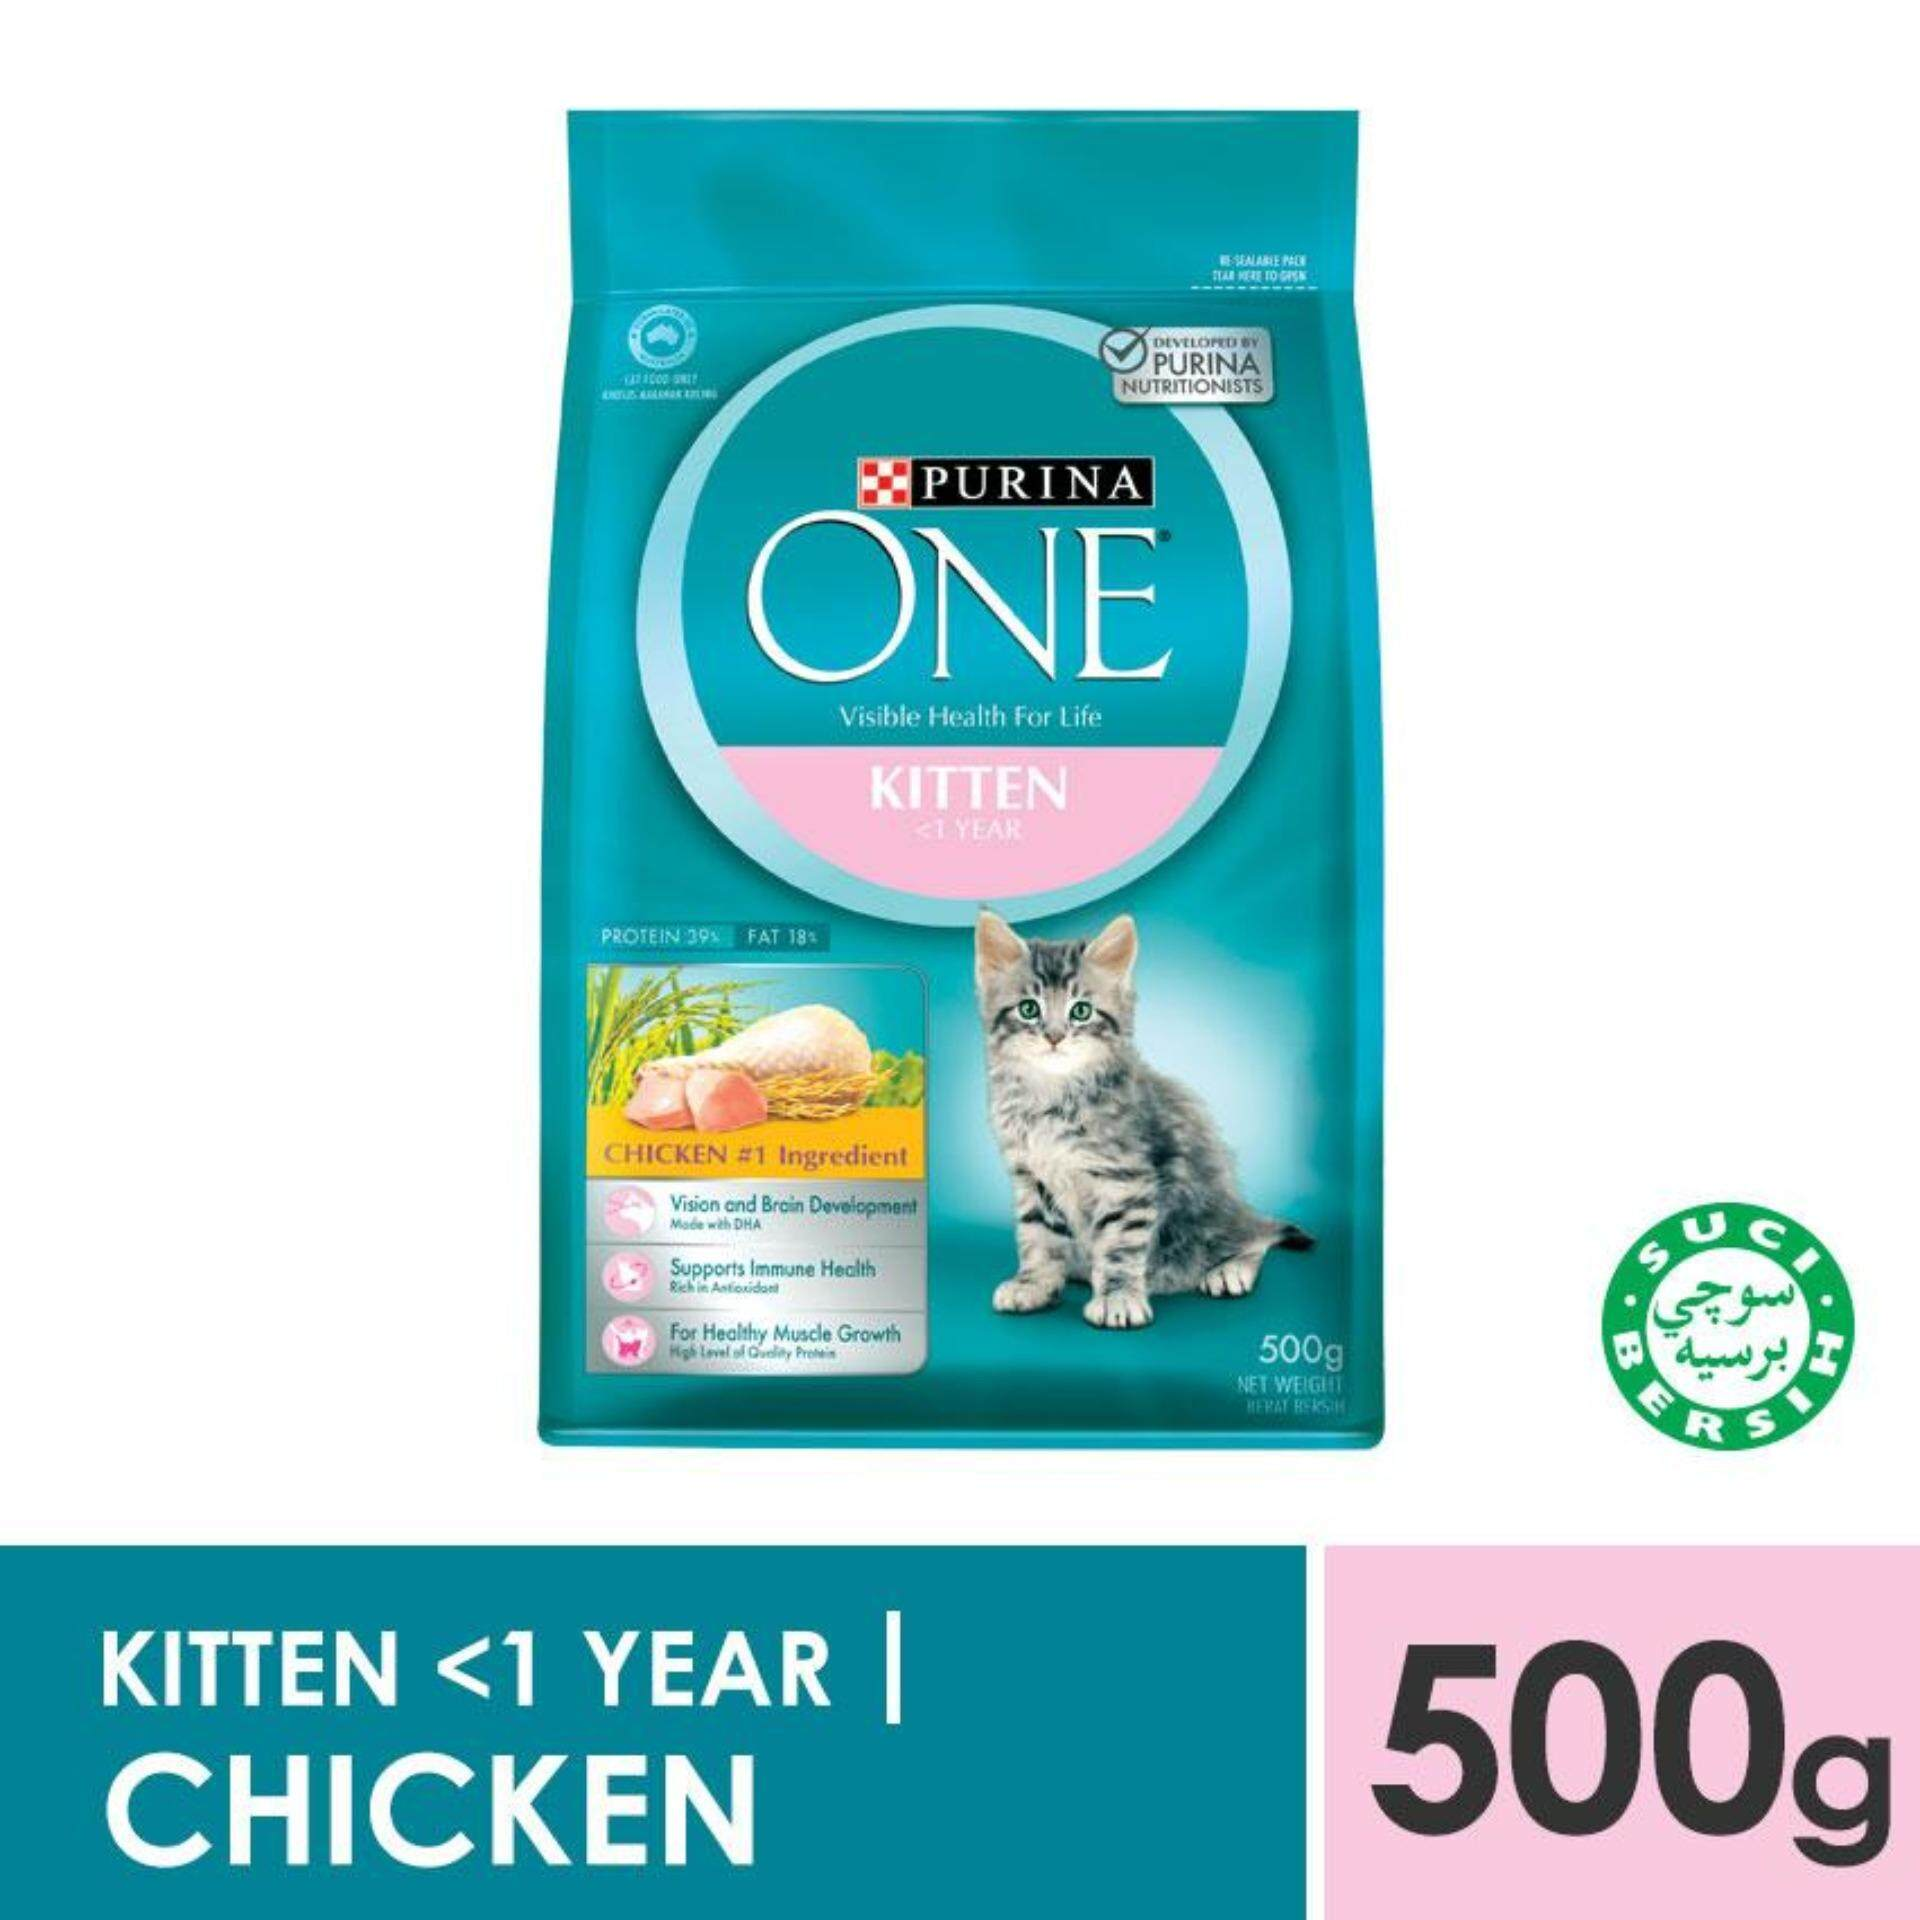 PURINA ONE® Kitten Dry Cat Food with Chicken (1 x 500g)